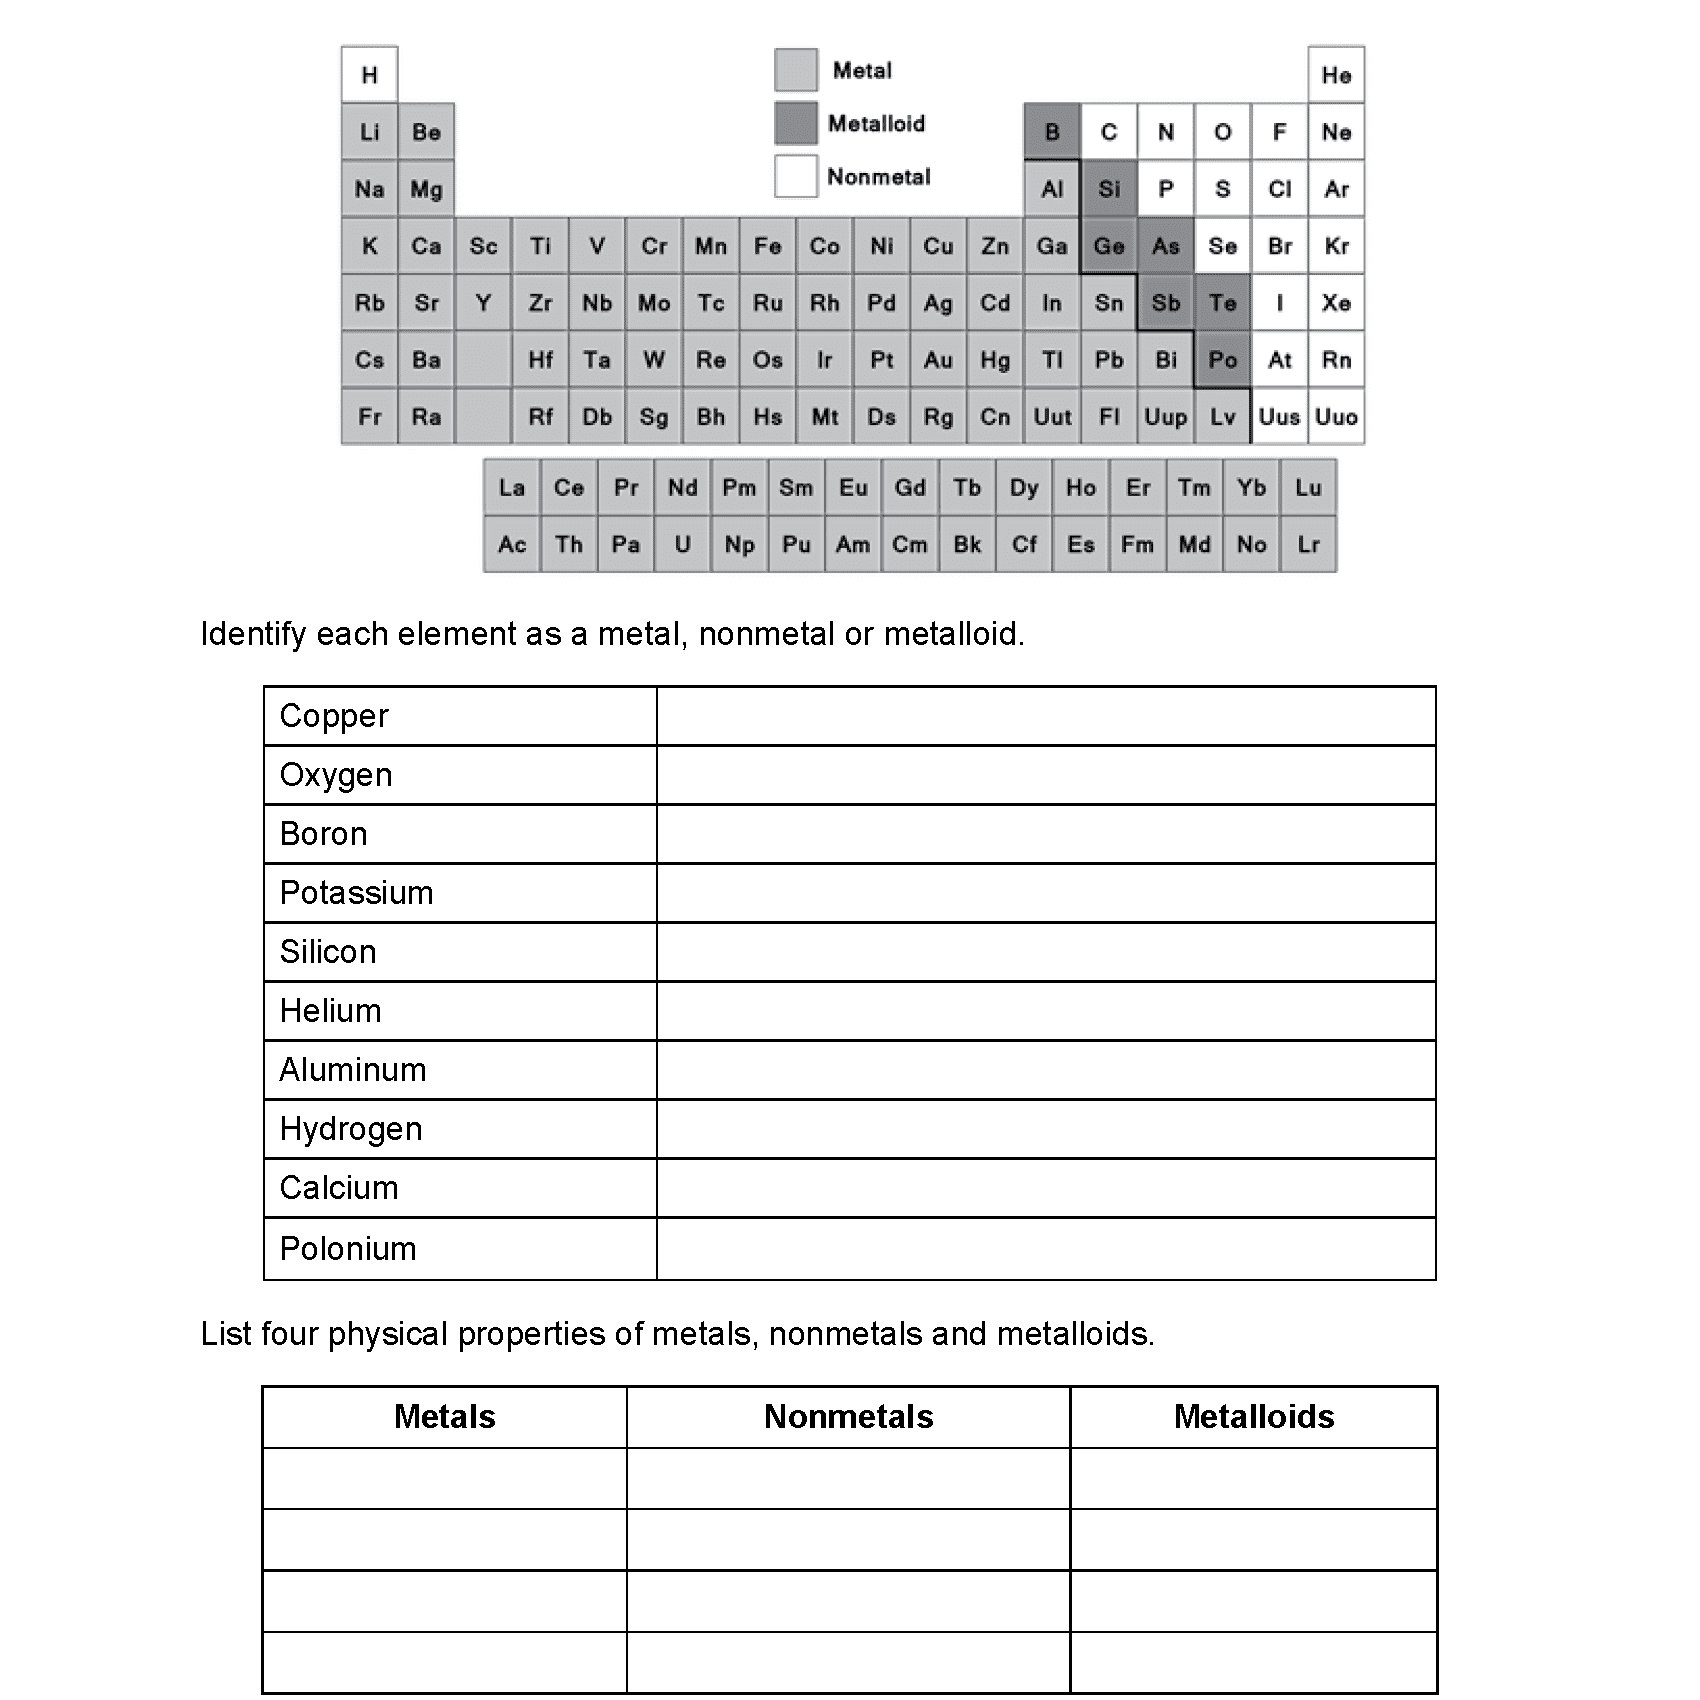 Worksheet for identifying metals, nonmetals, metalloids and their properties.